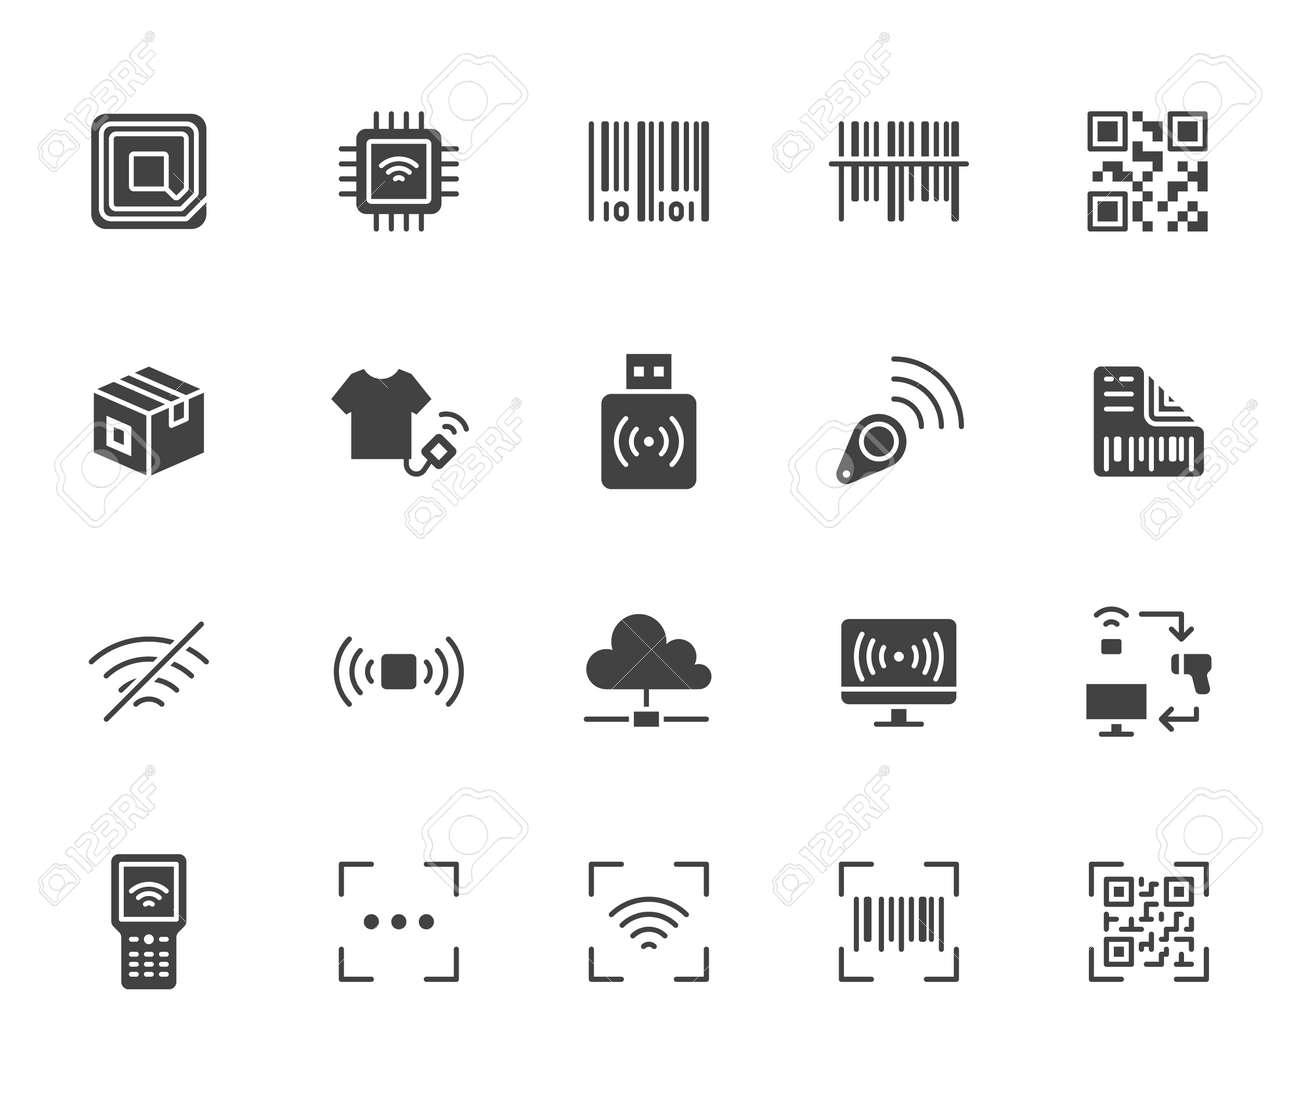 RFID, qr code, barcode flat icon set. Price tag scanner, label reader, identification microchip black silhouette vector illustration. Simple glyph signs retail safety application. - 163160937